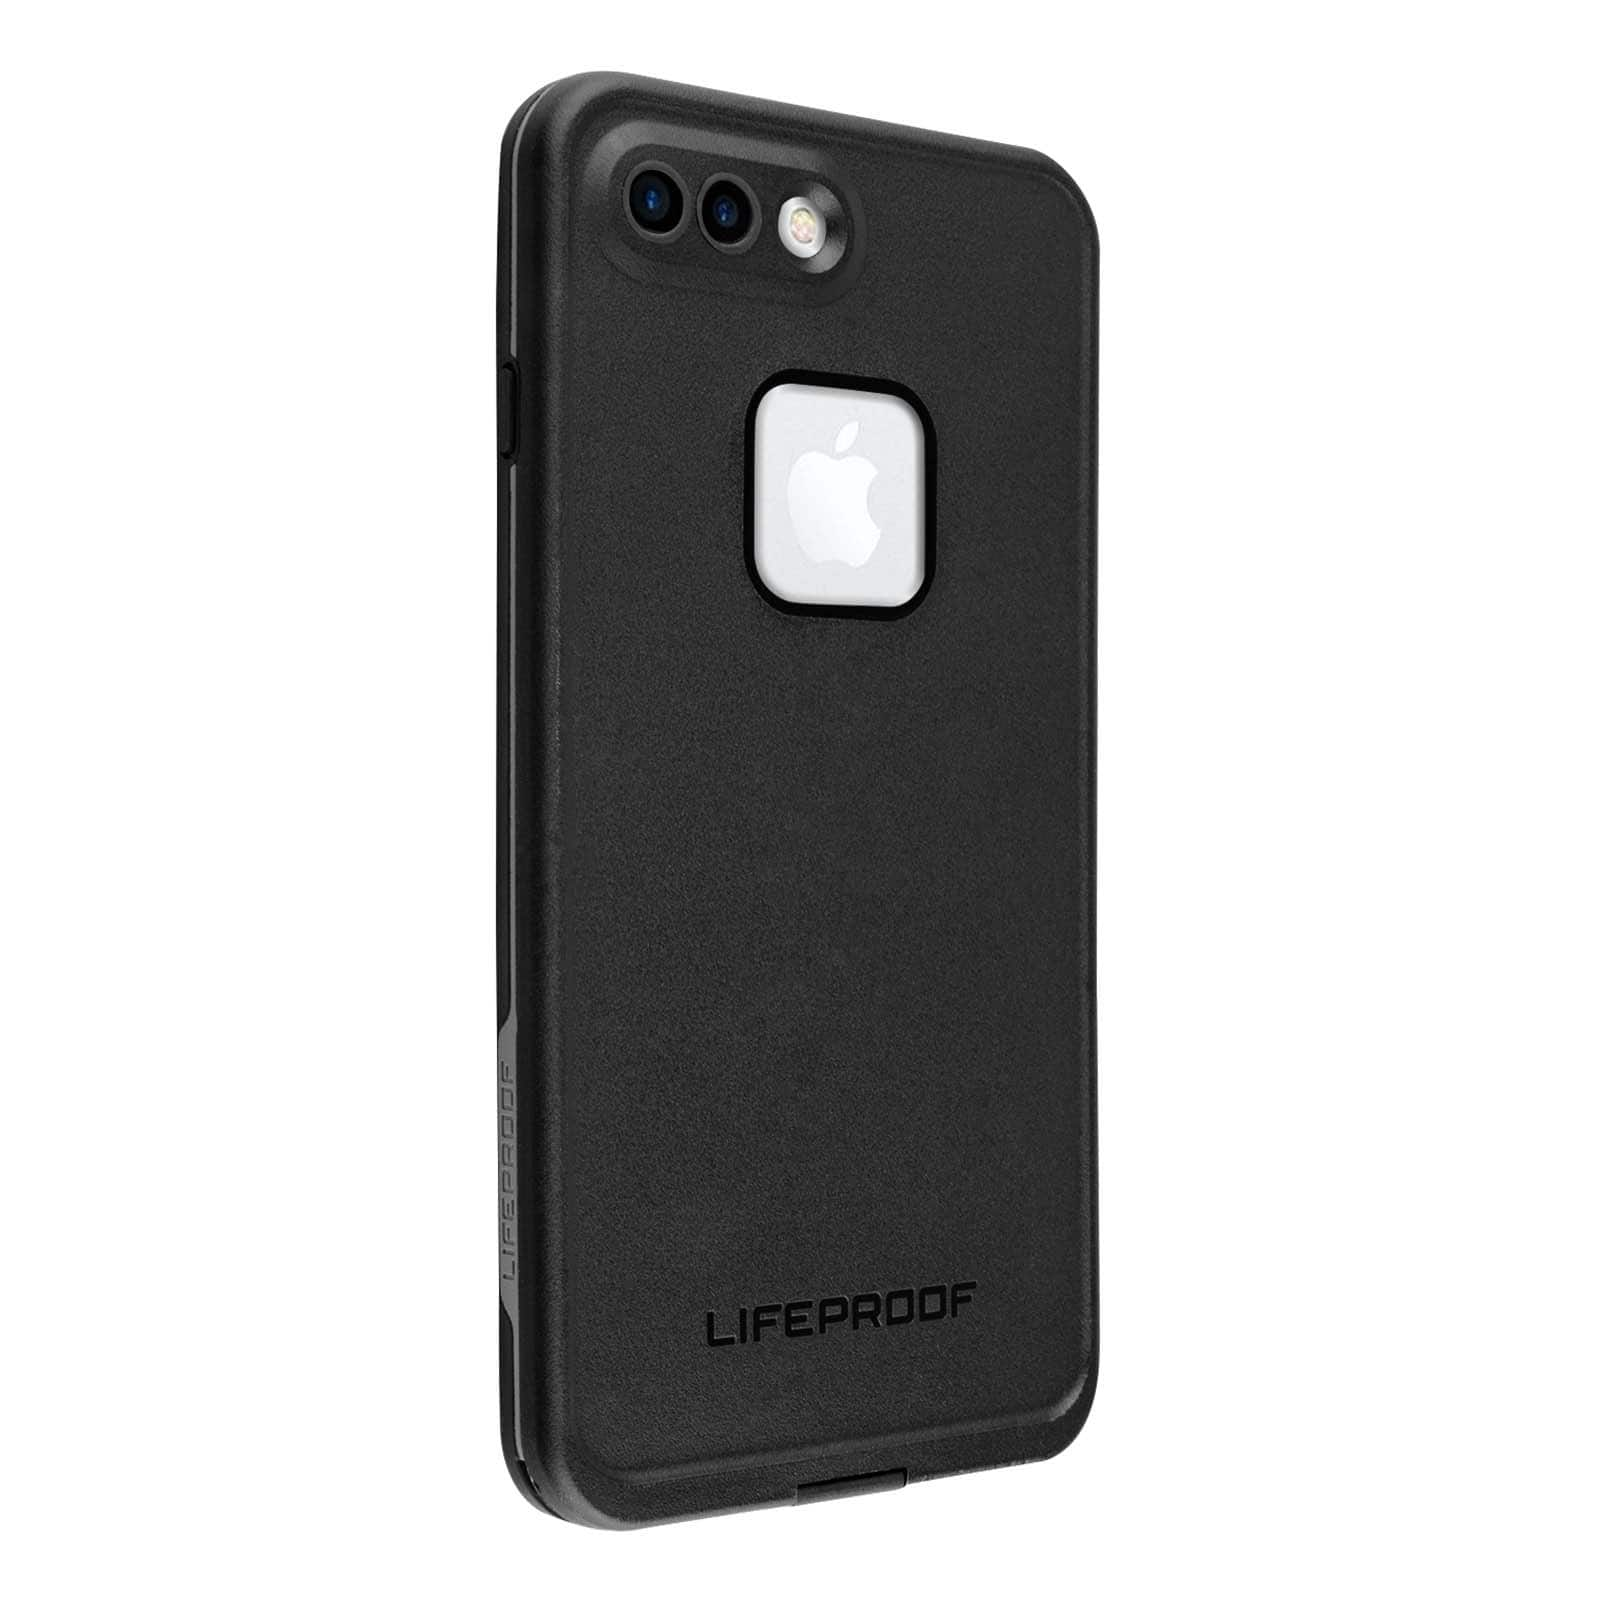 LifeProof Fre Case For IPhone 7 or IPhone 7 Plus $30 + free shipping